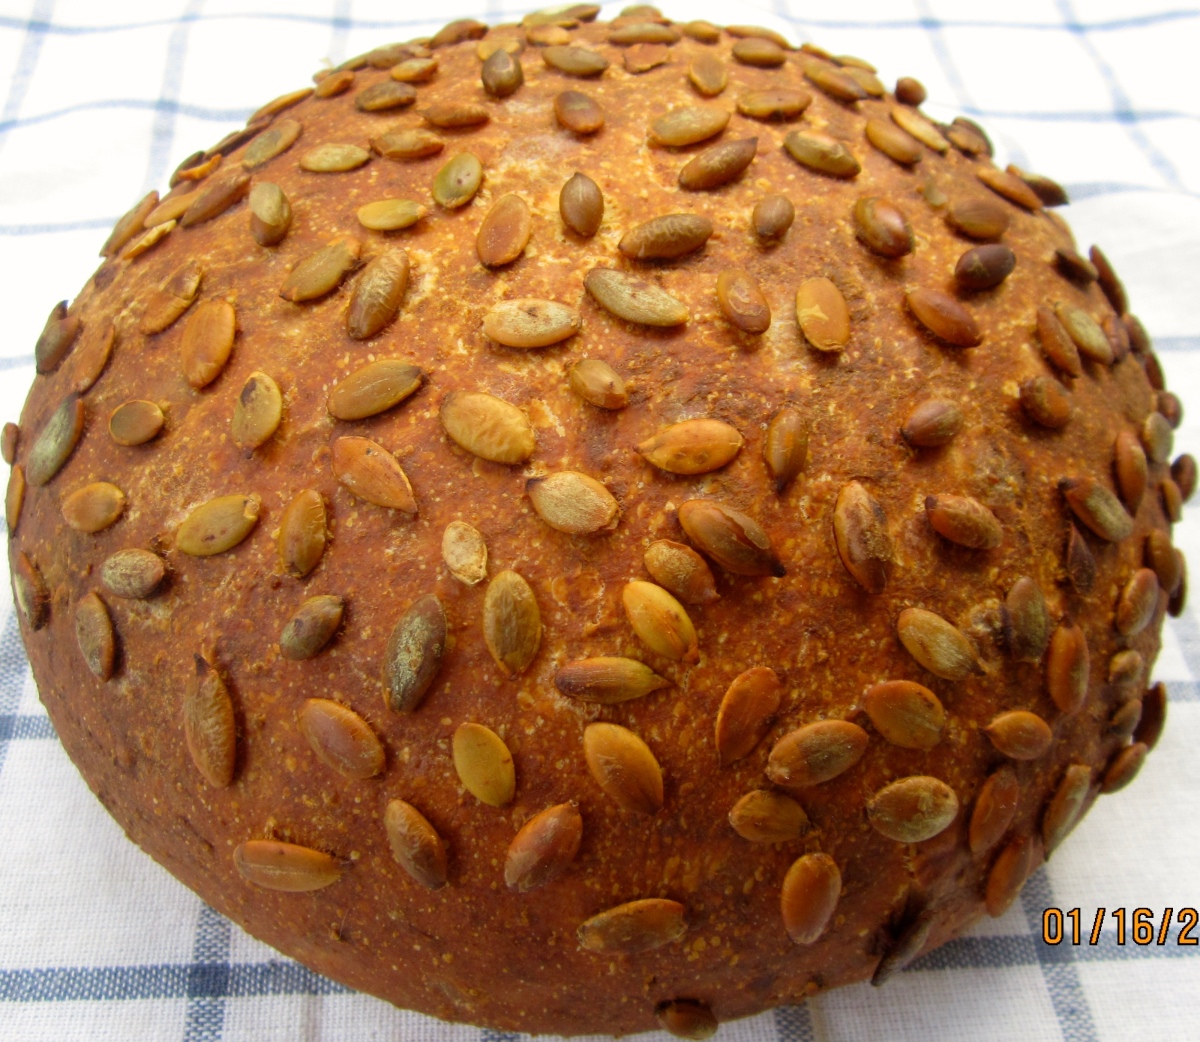 SENFBROT - MUSTARD CHEESE BREAD